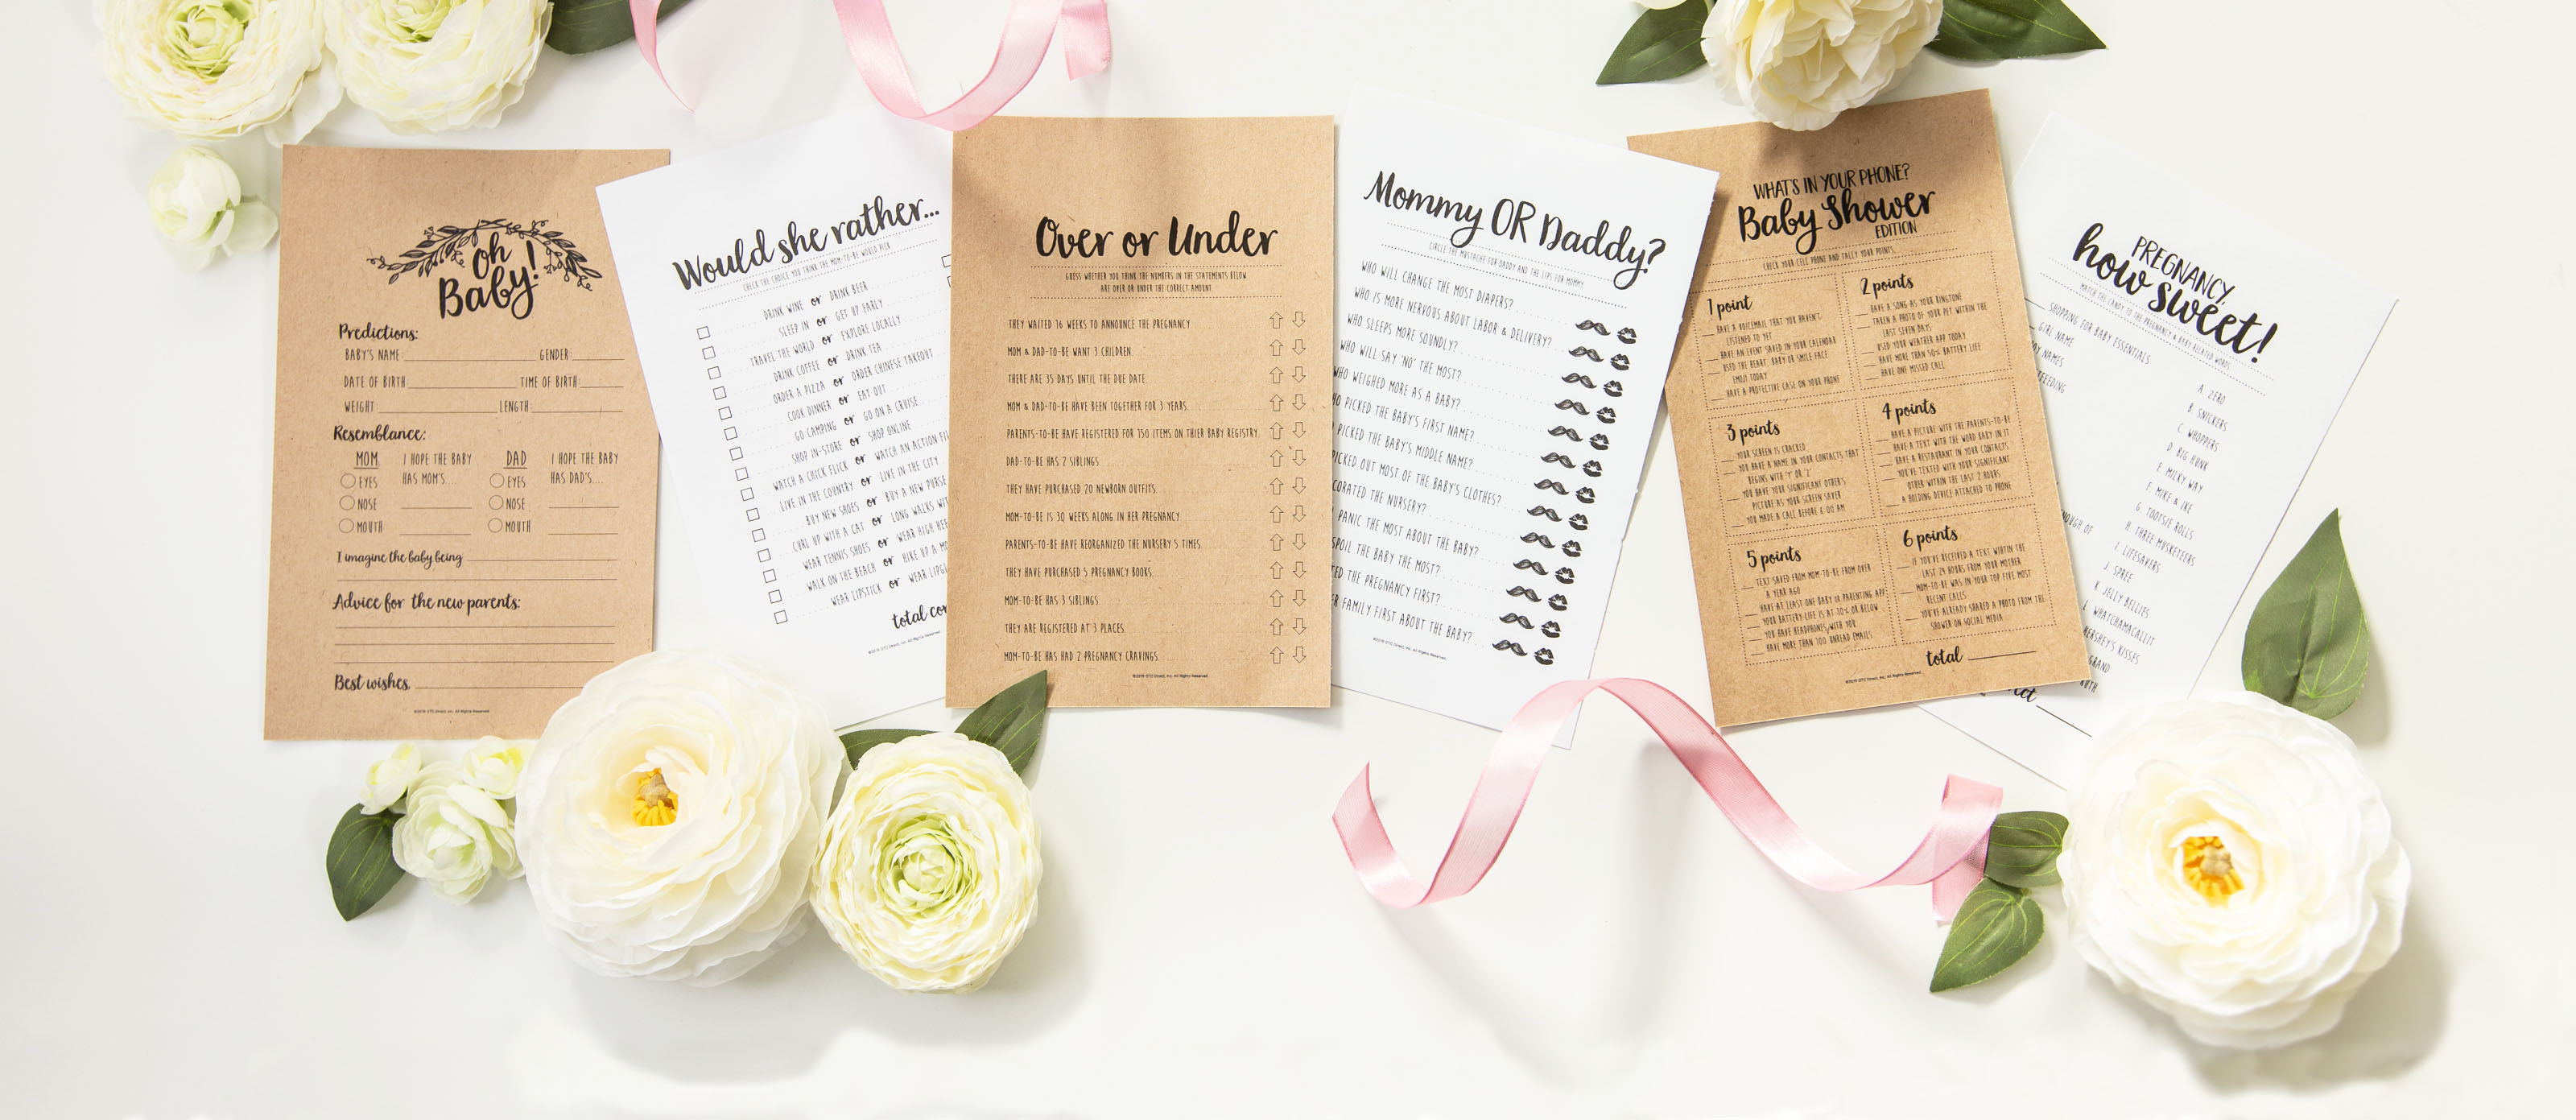 baby prediction cards predictions for baby advice cards baby shower game guess the baby stats advice for mom prediction cards